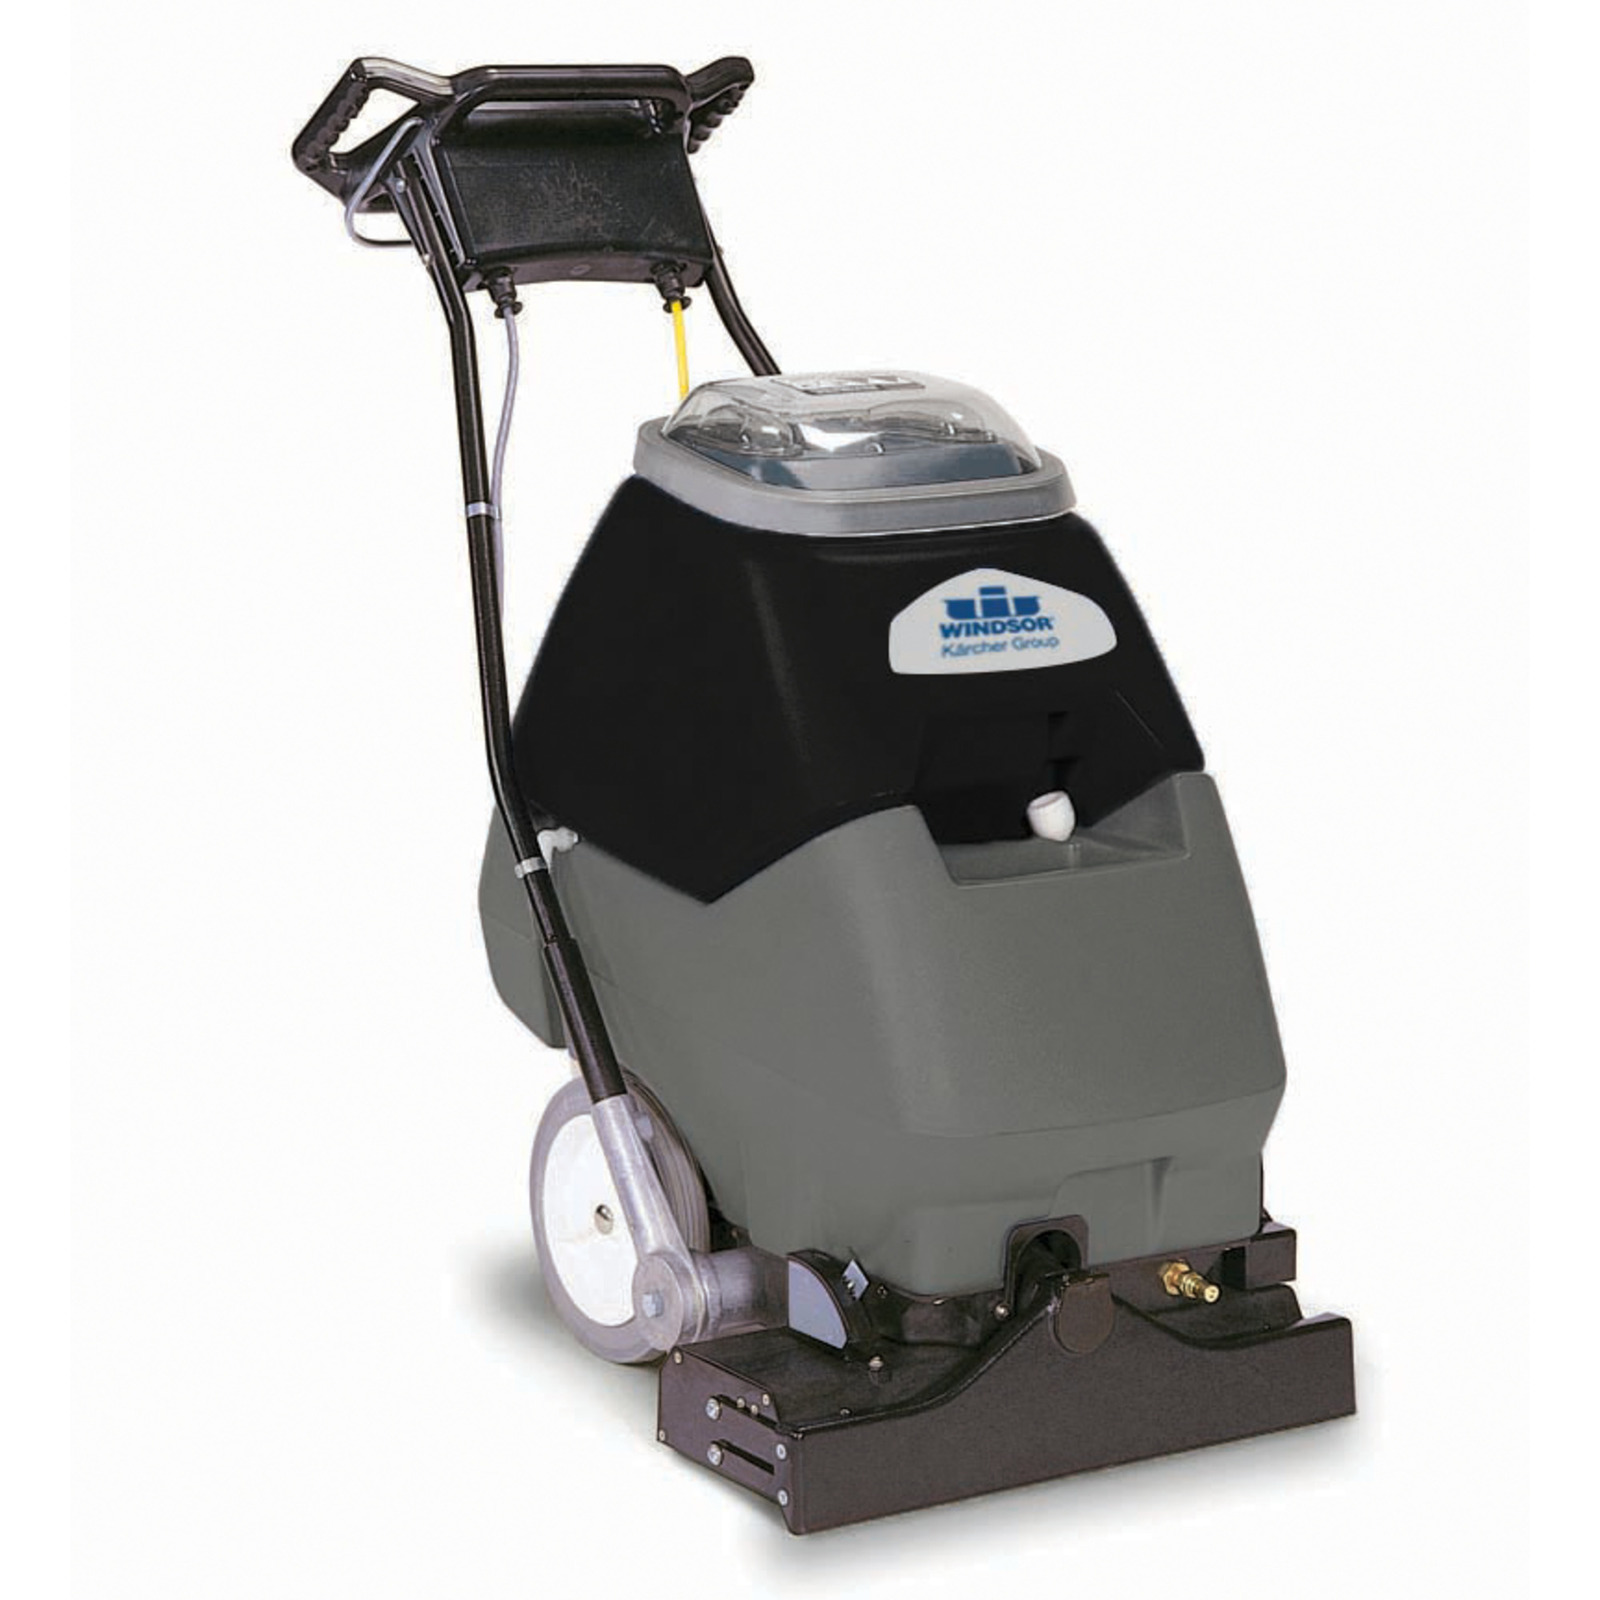 Windsor Clipper 12 gal Carpet Cleaning Machine 1.008-025.0 FREE Shipping